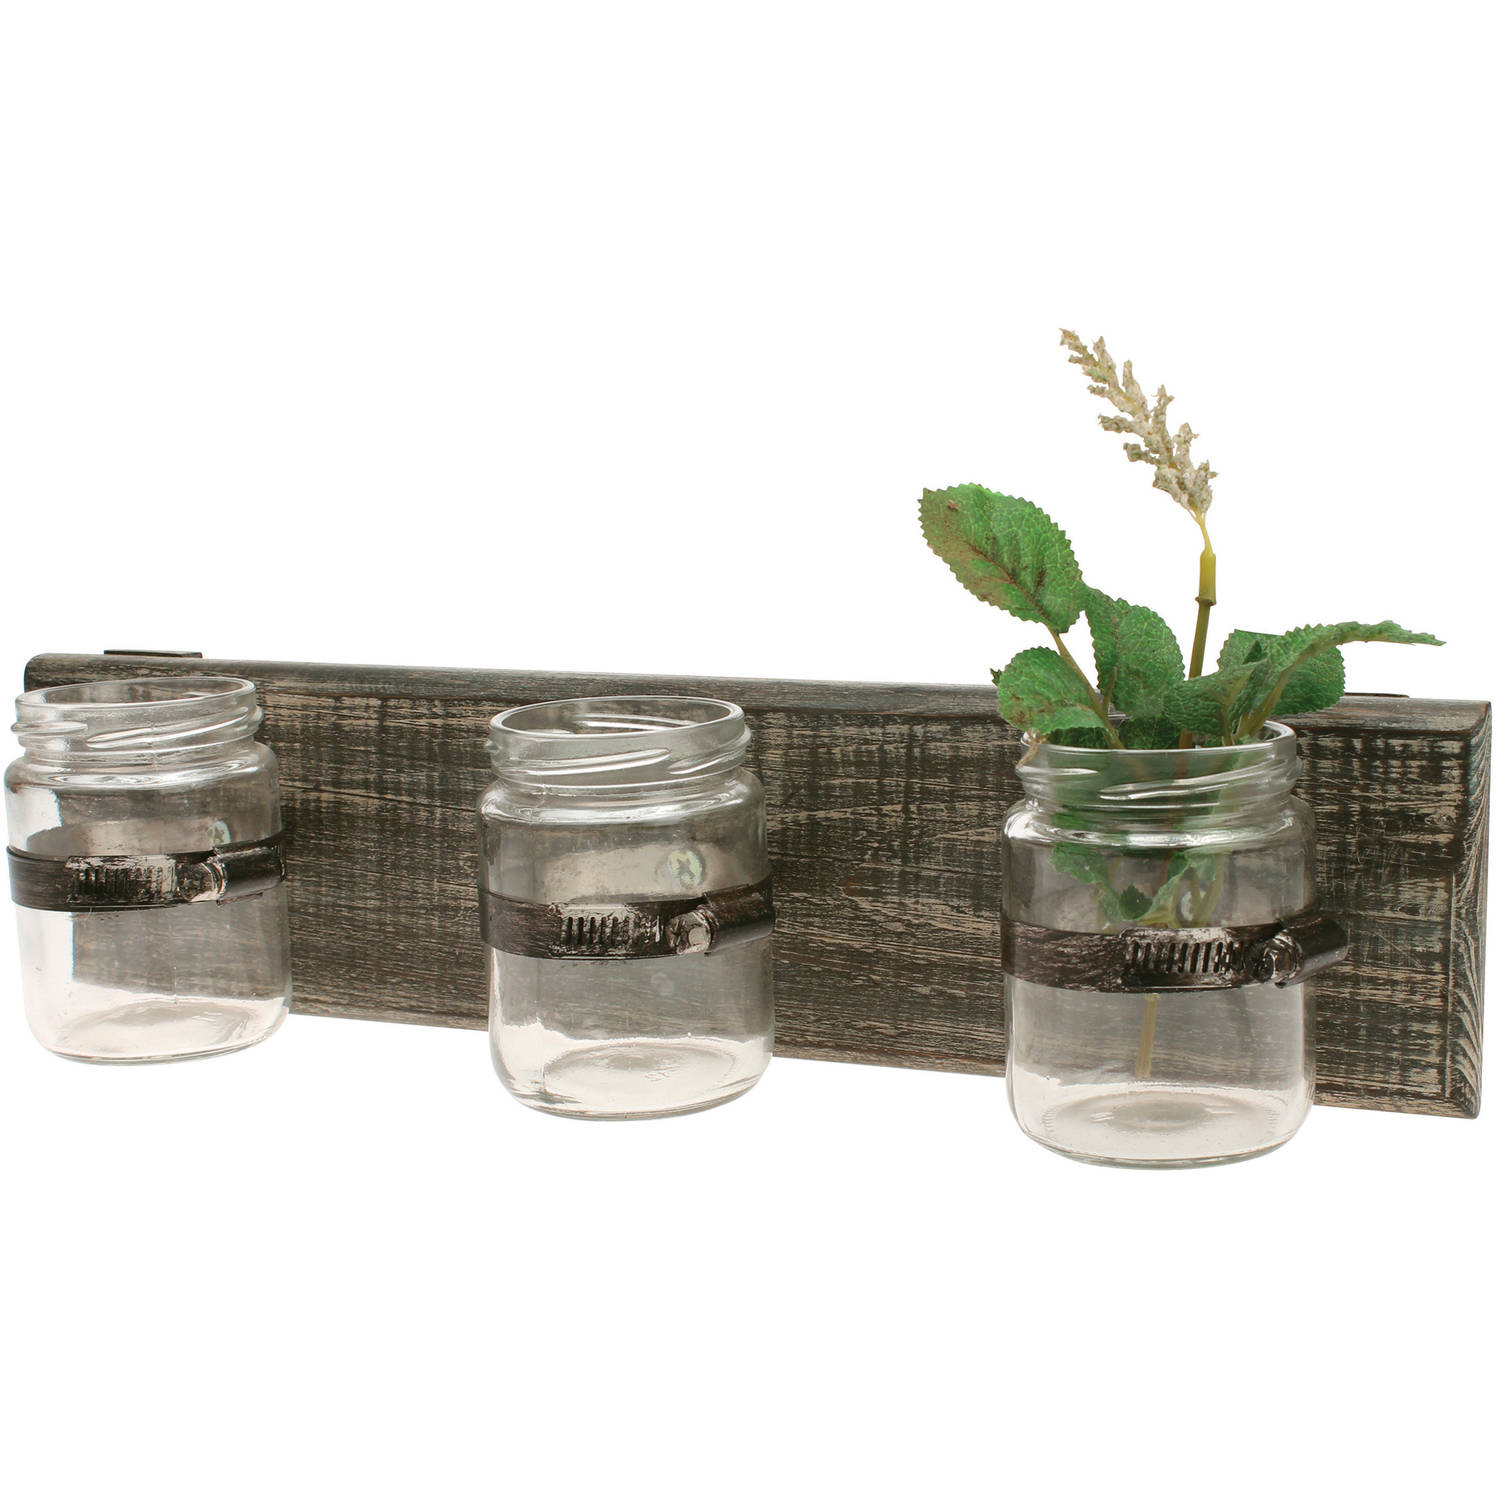 Worn Wood Wall Decor with 3 Glass Containers